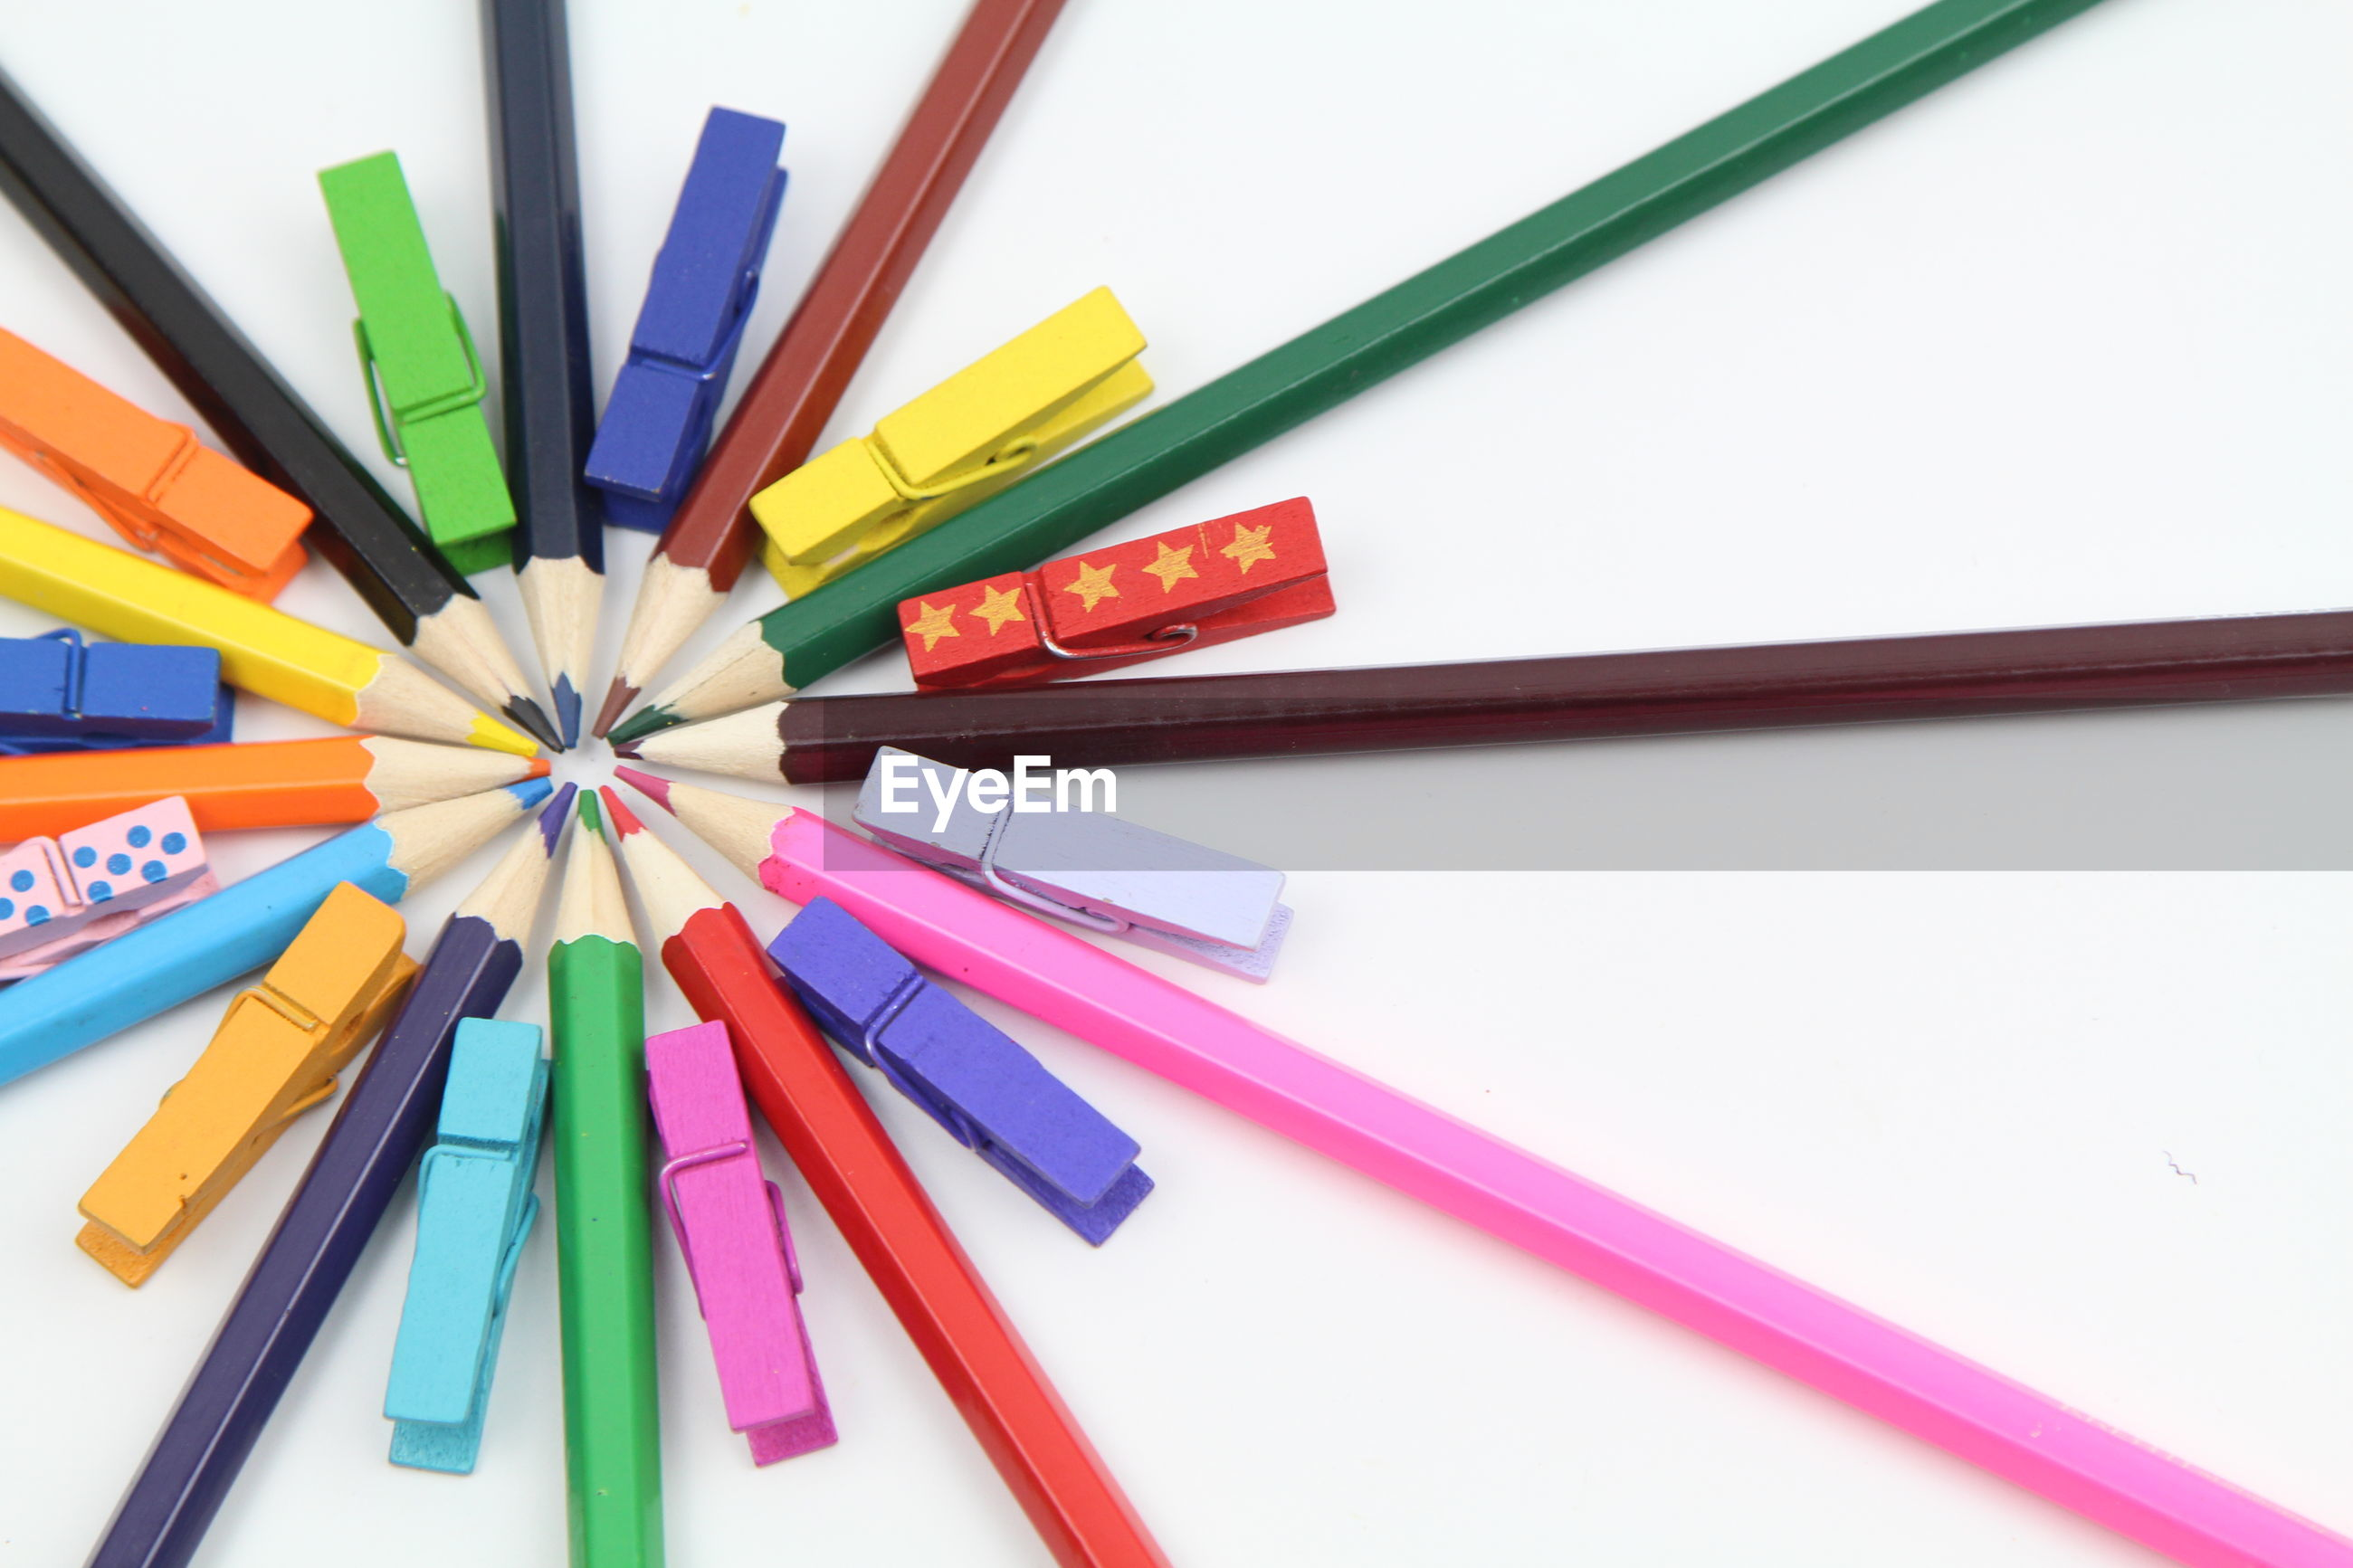 Close-up of colored pencils with colorful clothespins on white background